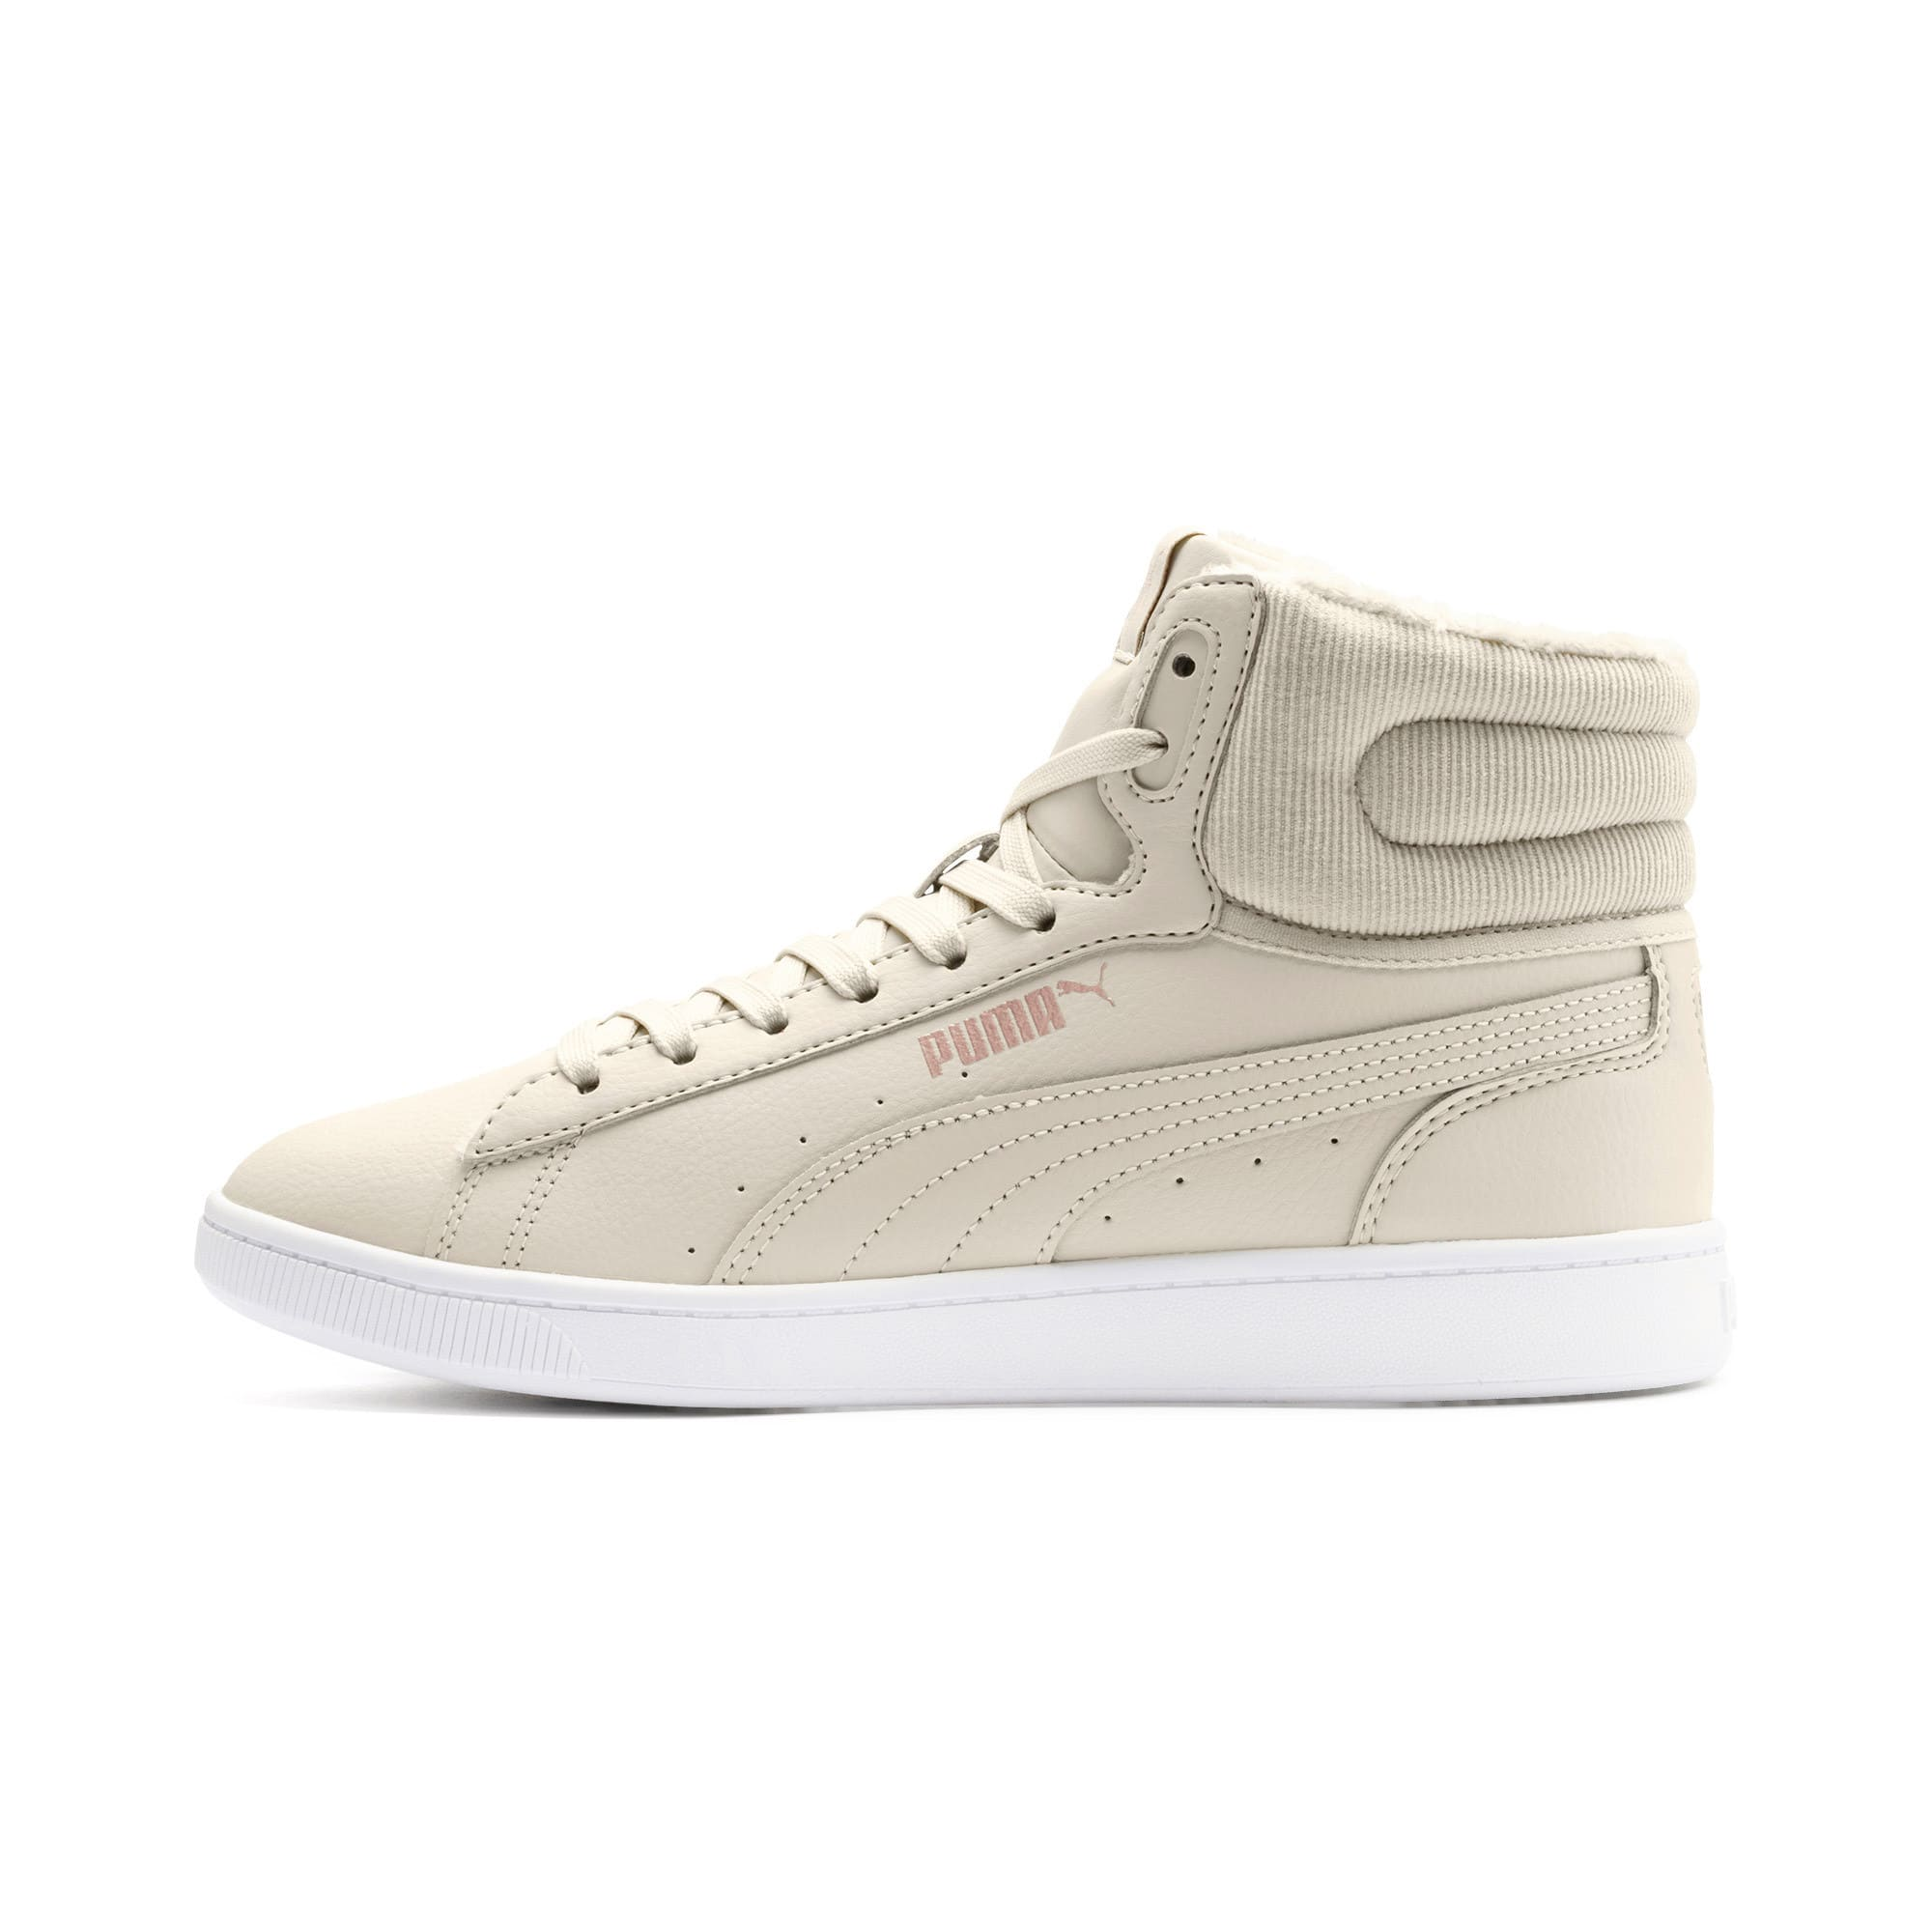 Vikky v2 Mid-Cut Winter Women's Trainers, Overcast-Rose Gold-White, large